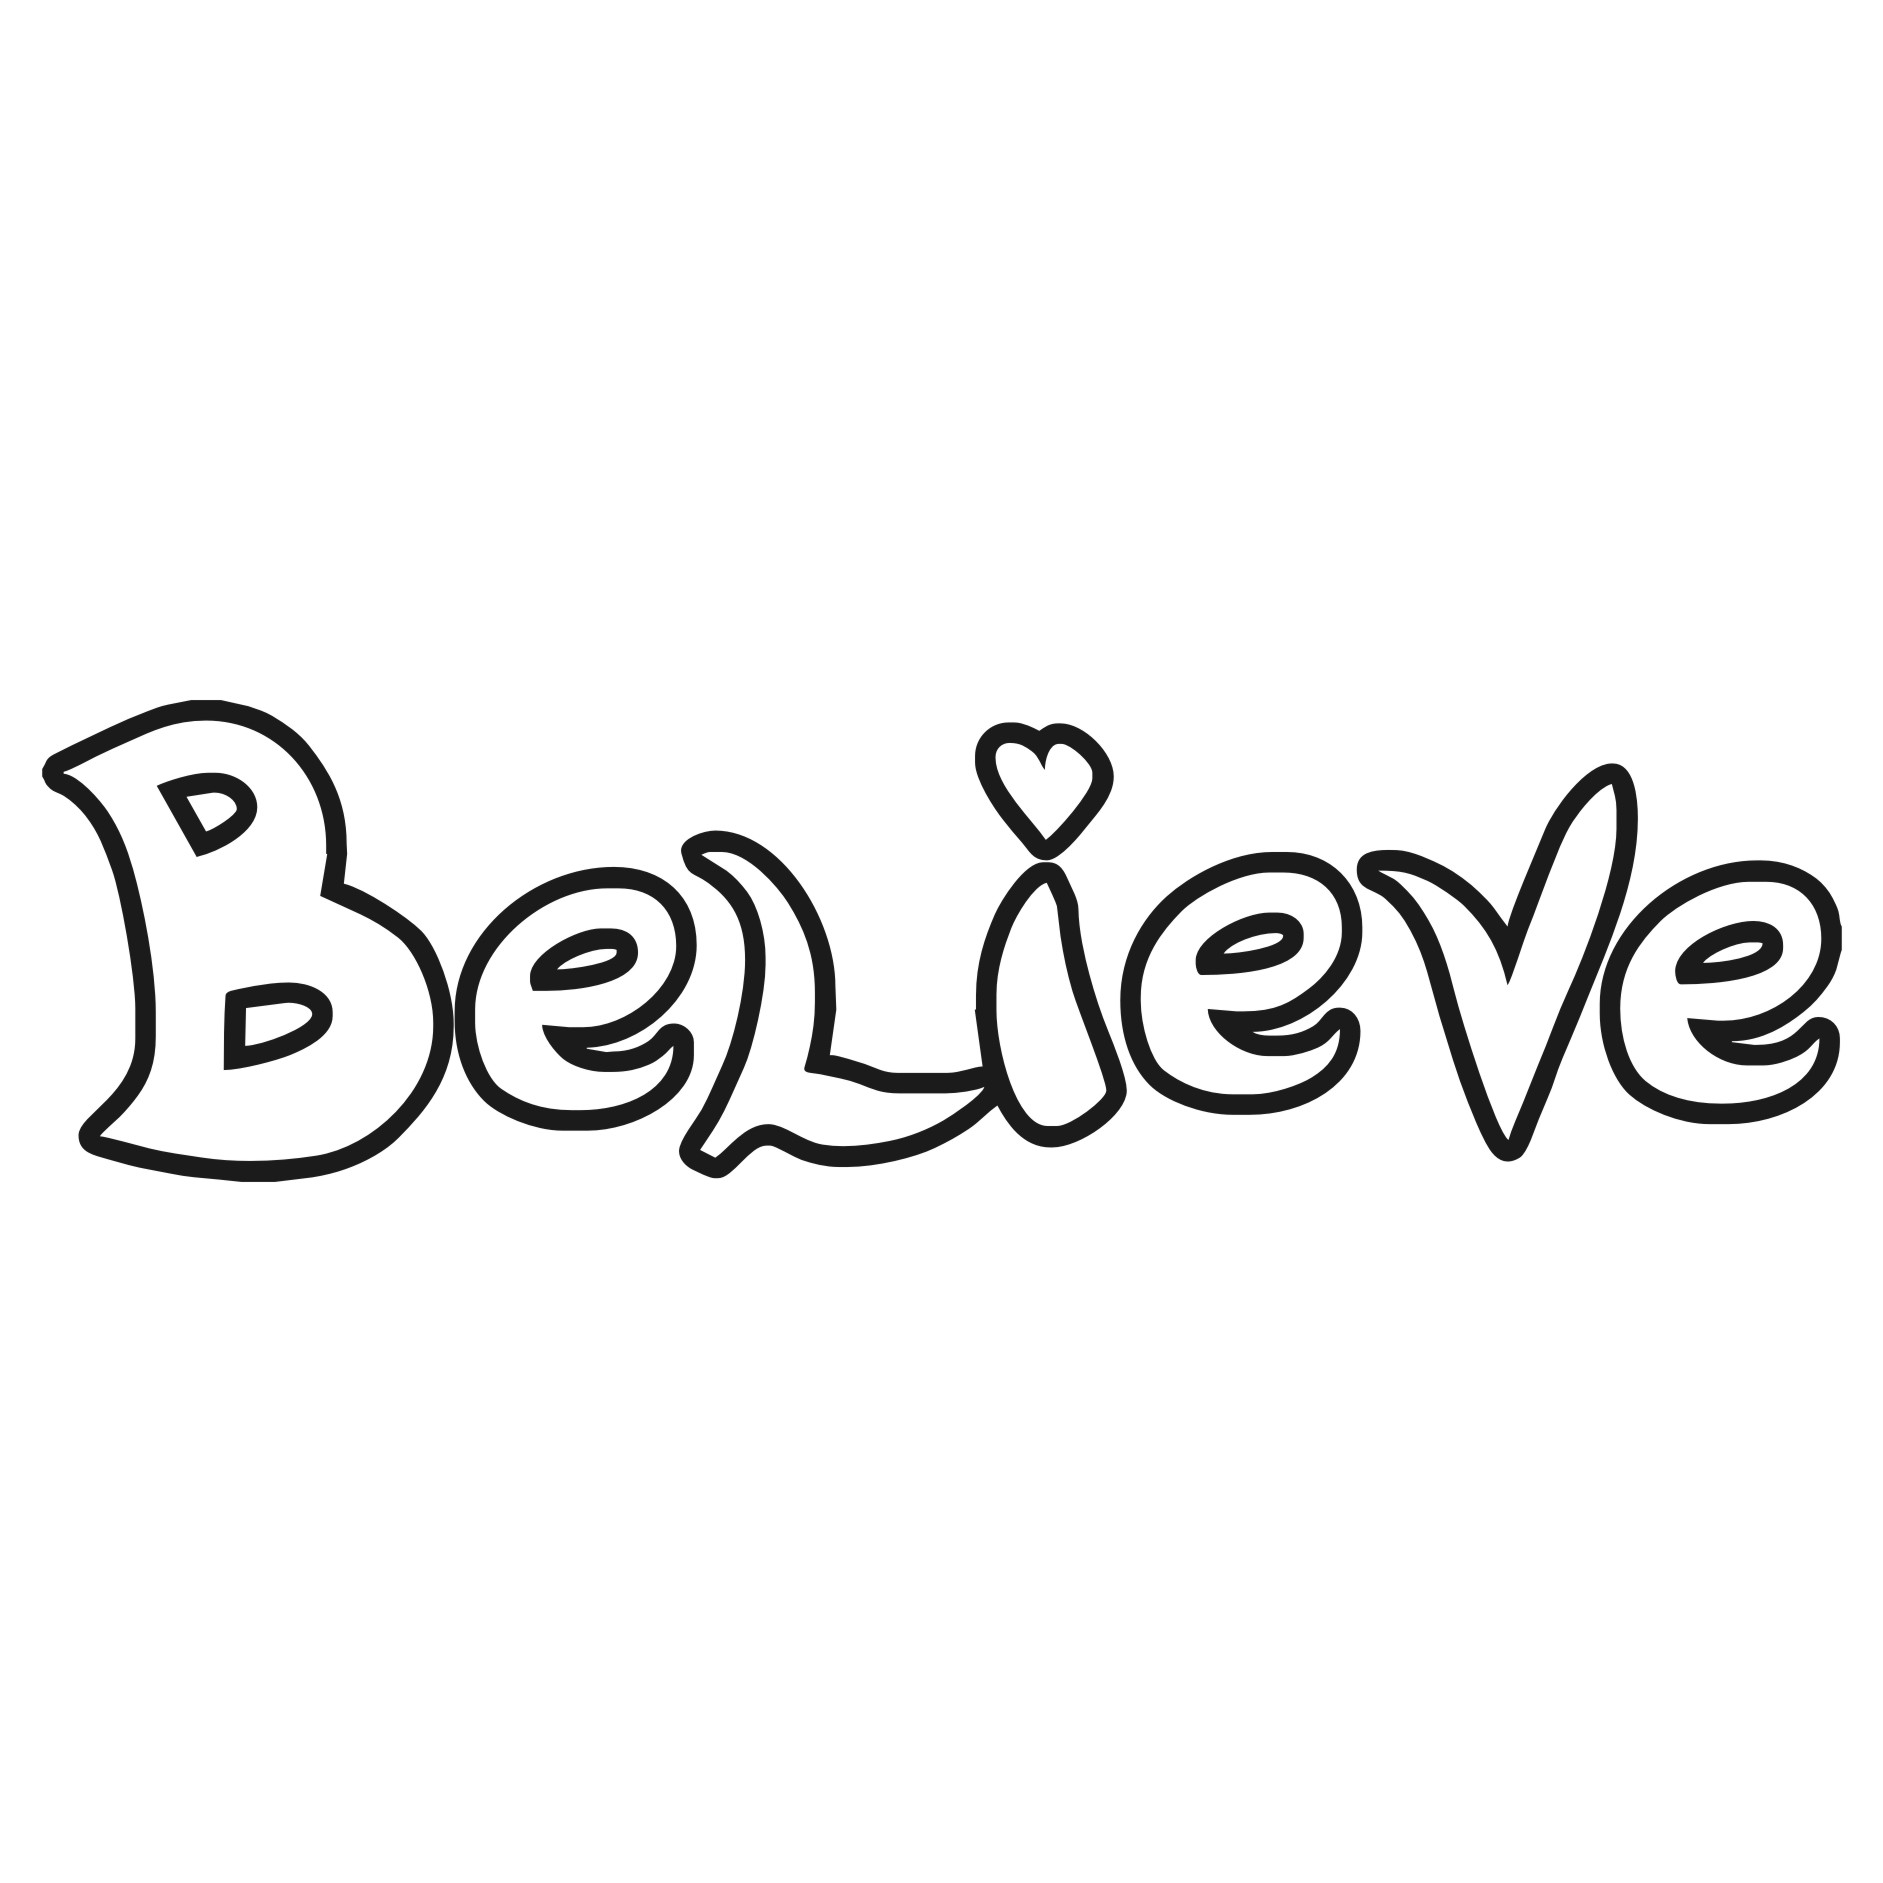 Free Believe Cliparts Download Free Clip Art Free Clip Art On Clipart Library